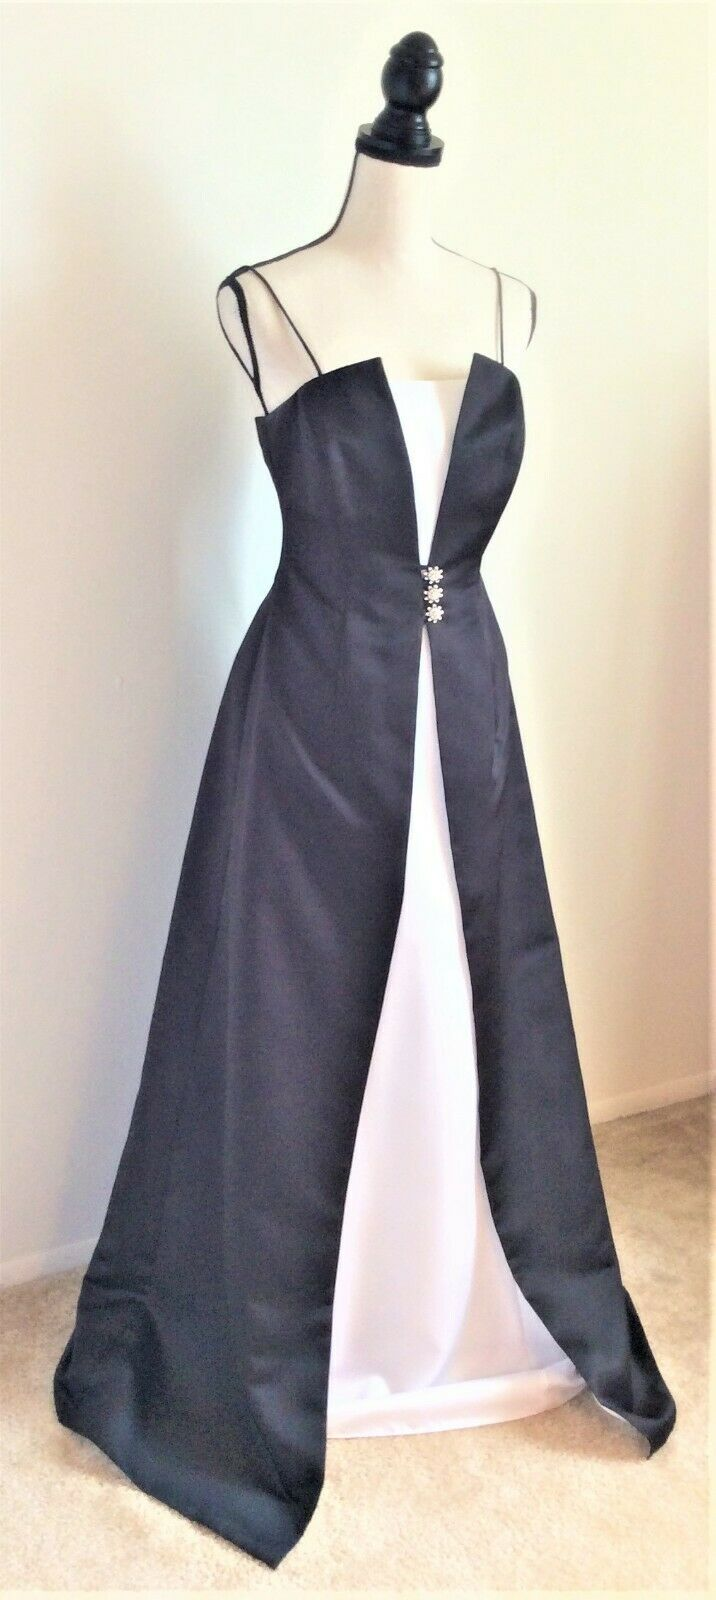 Black and White Sophisticated Formal Evening Gown Dress, Medium, Bust 34